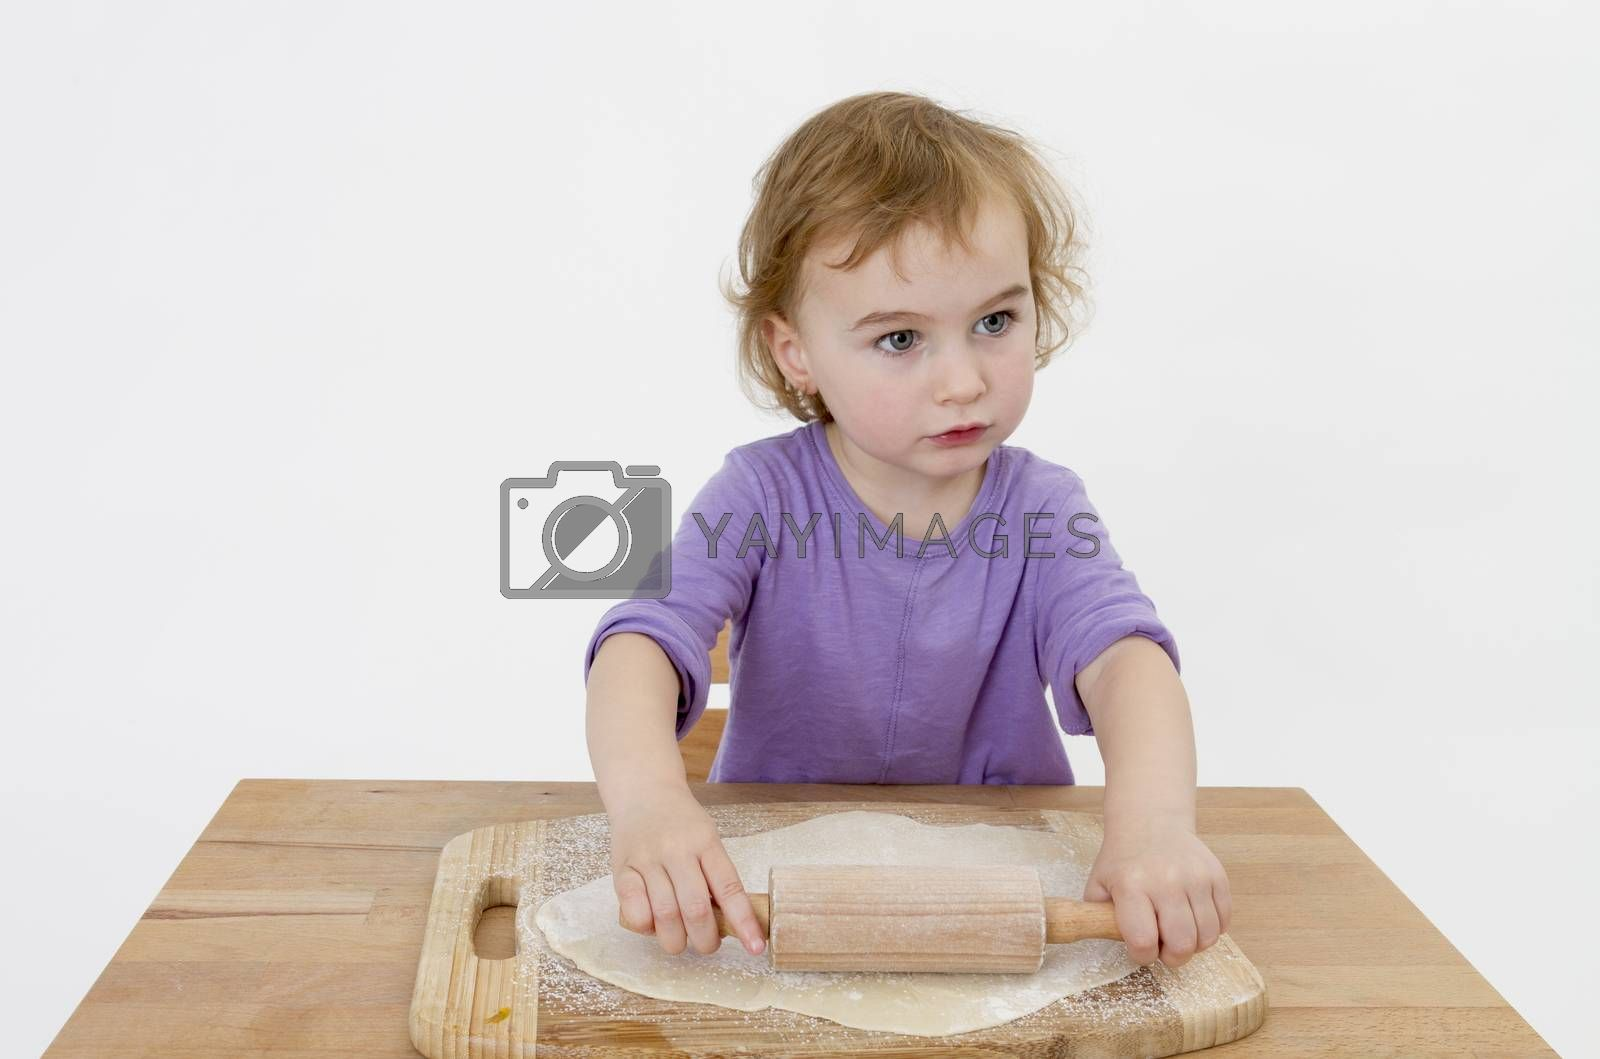 Royalty free image of child rolling out dough by gewoldi